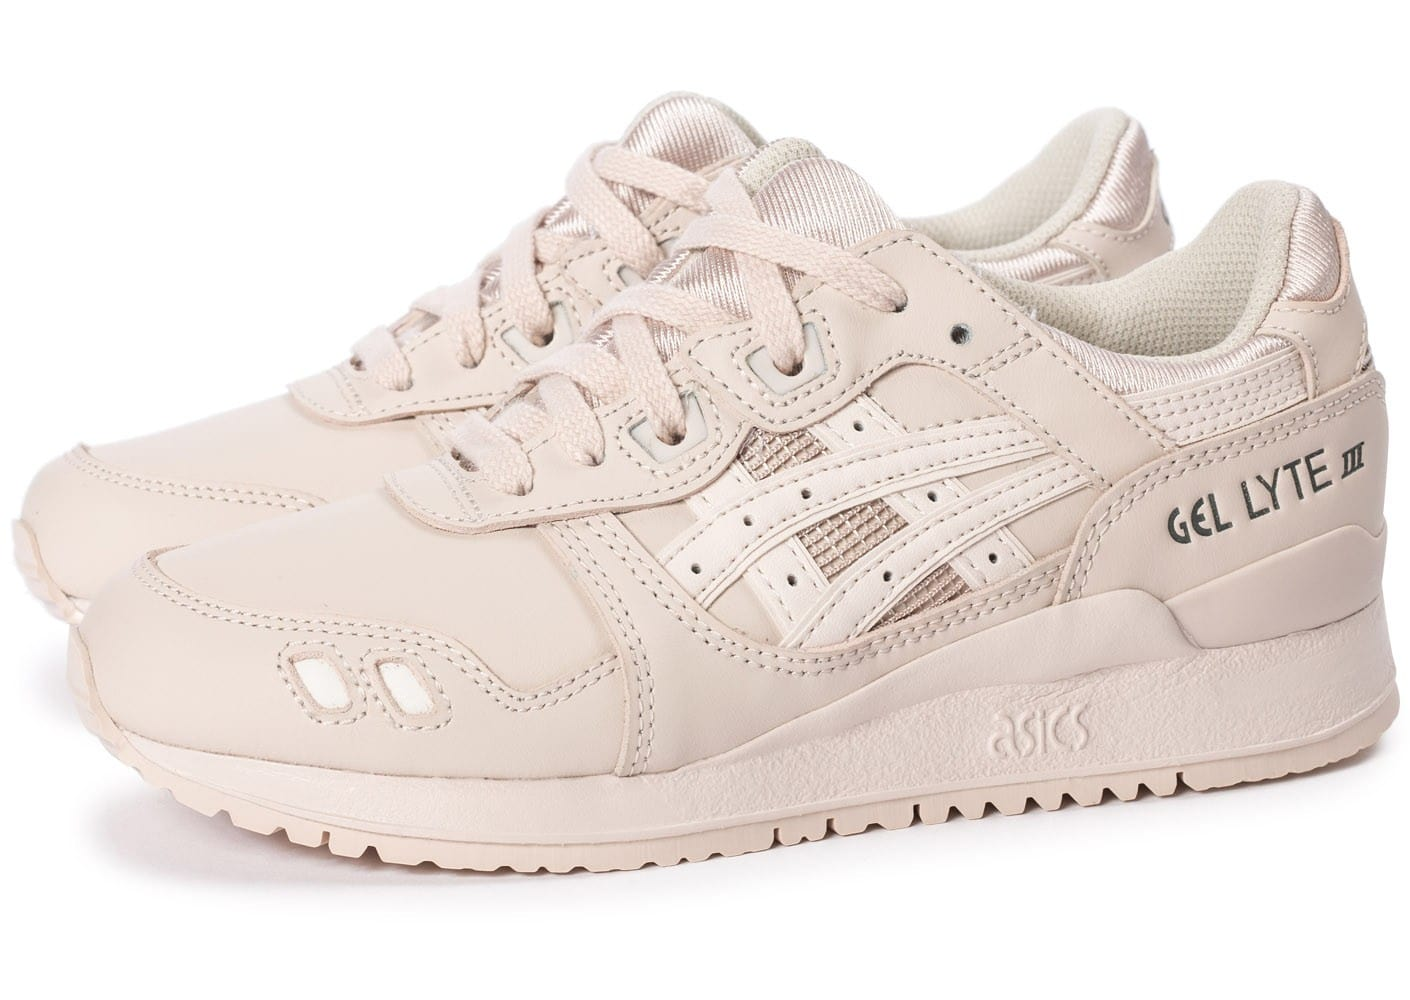 Asics Gel Lyte III Whisper Pink Chaussures Toutes les